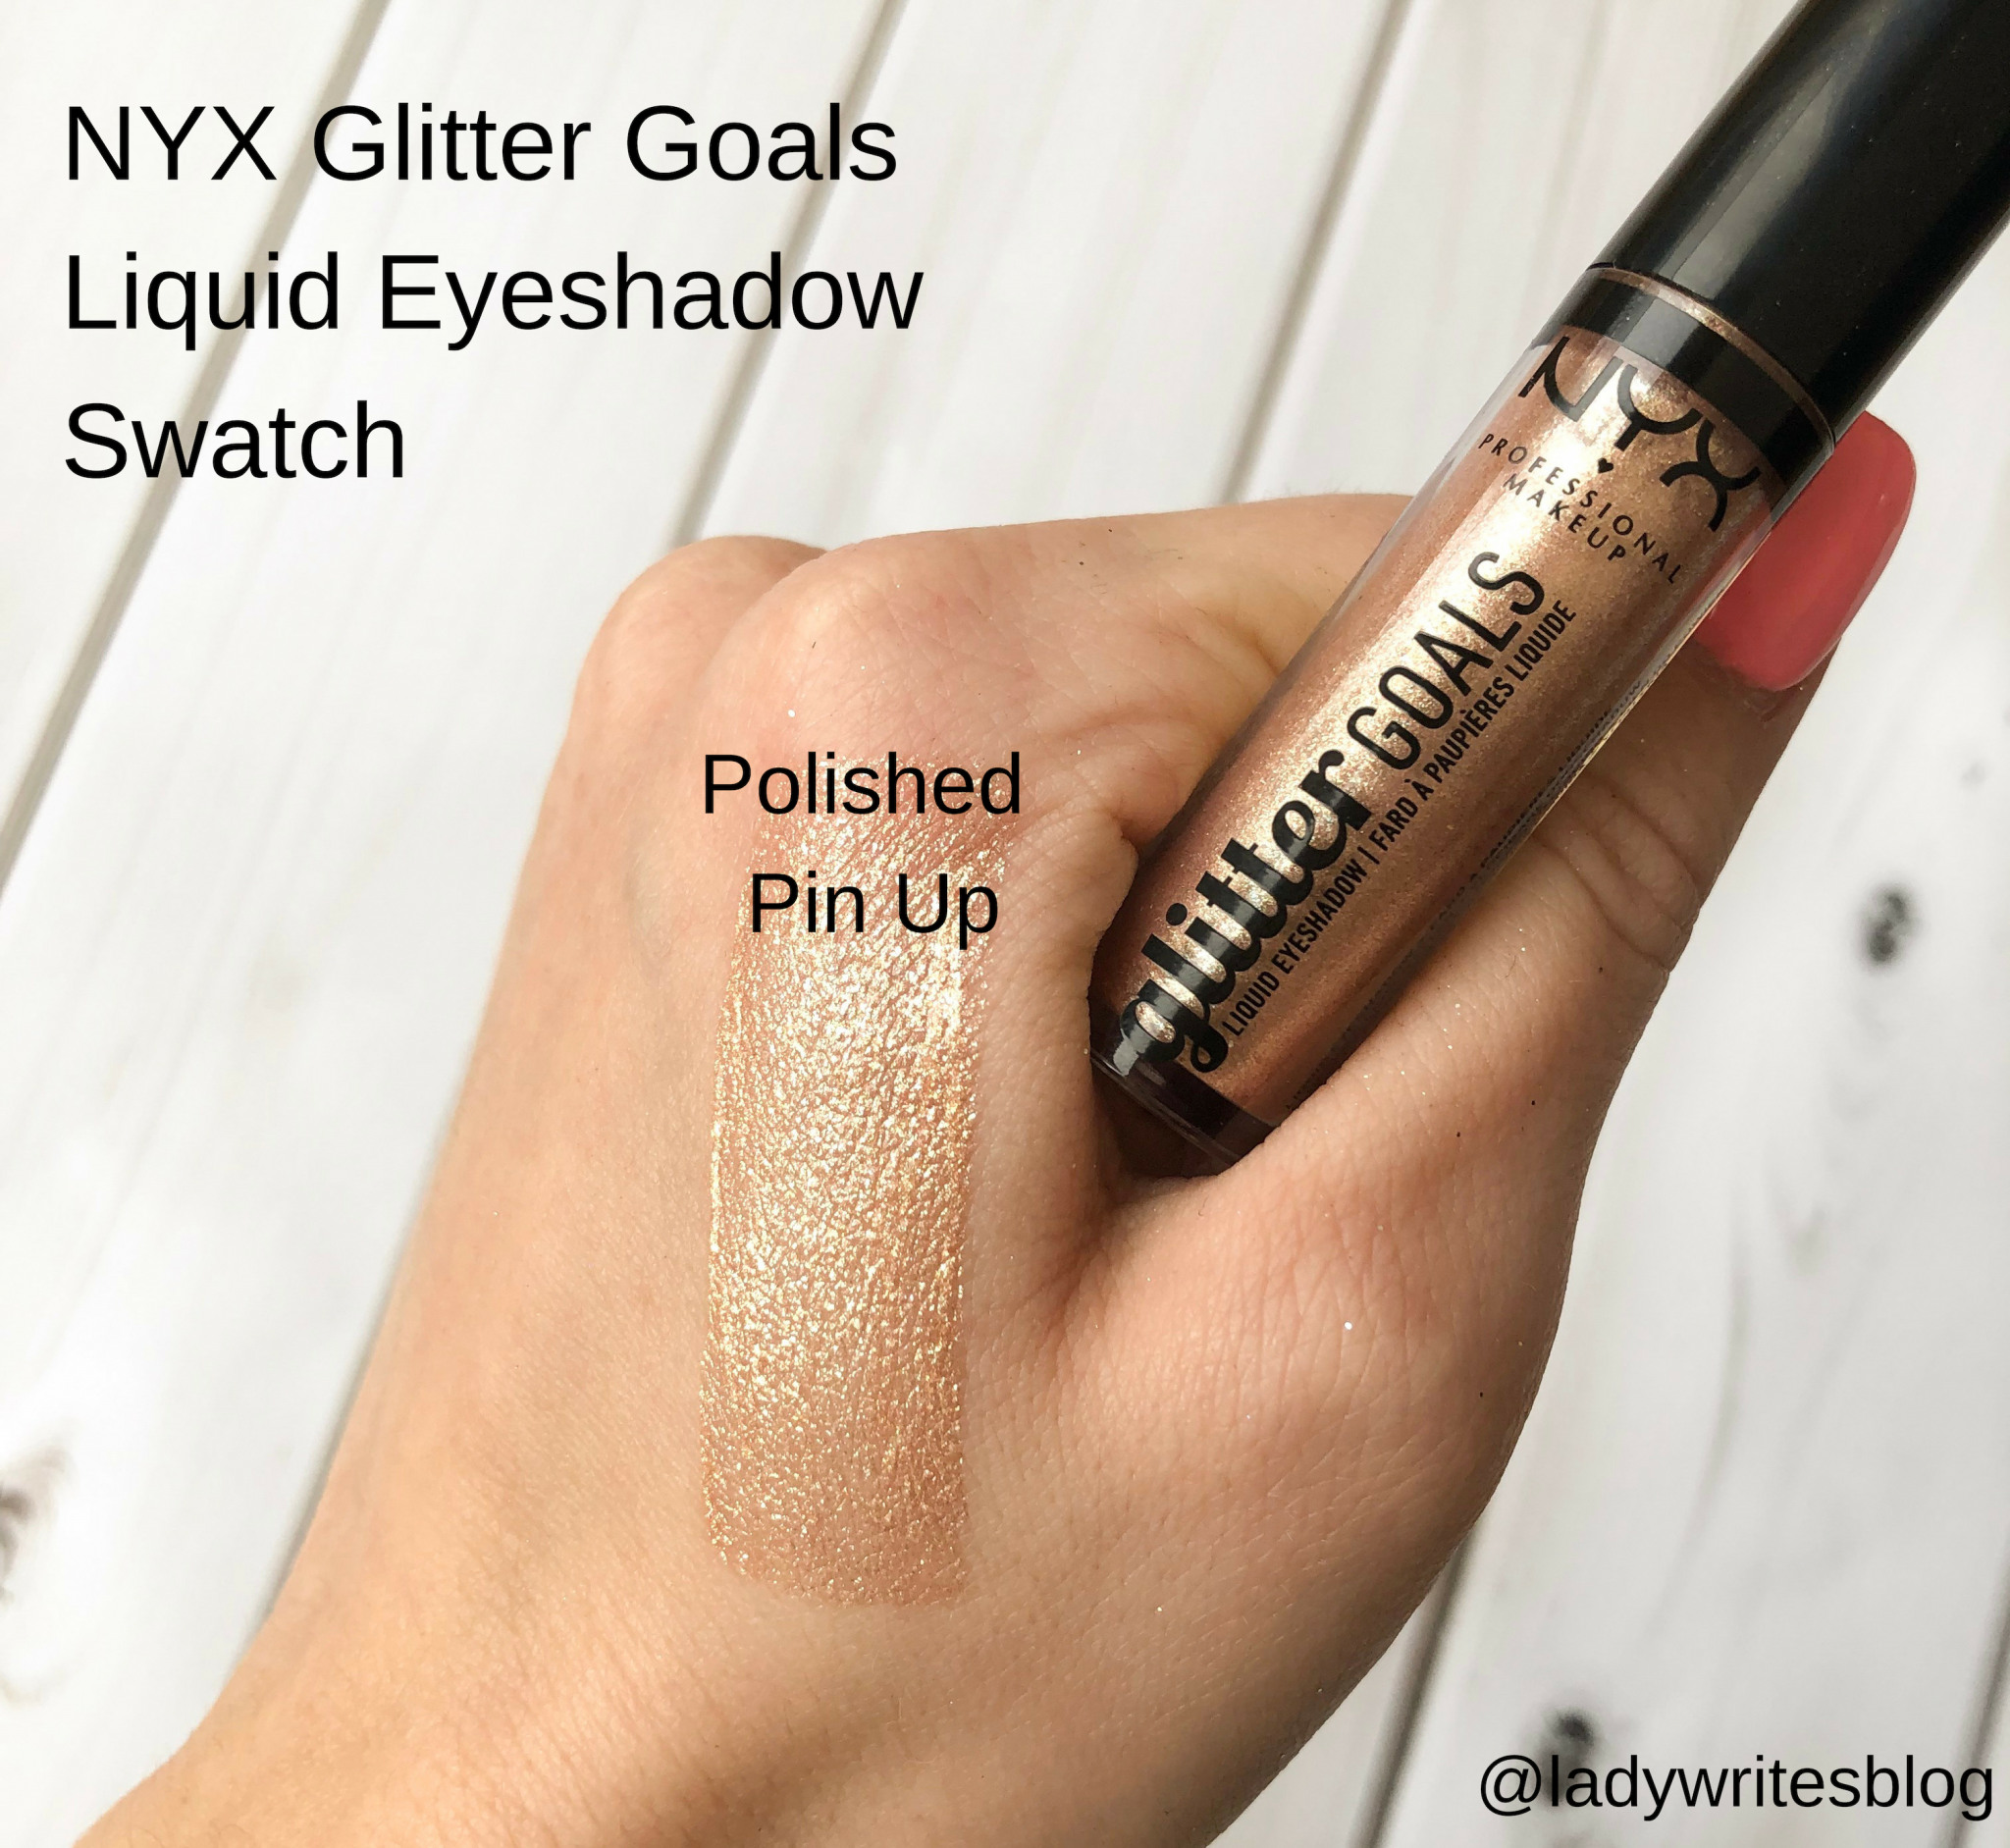 NYX Glitter Goals Liquid Eyeshadow Swatch, Polished Pin Up